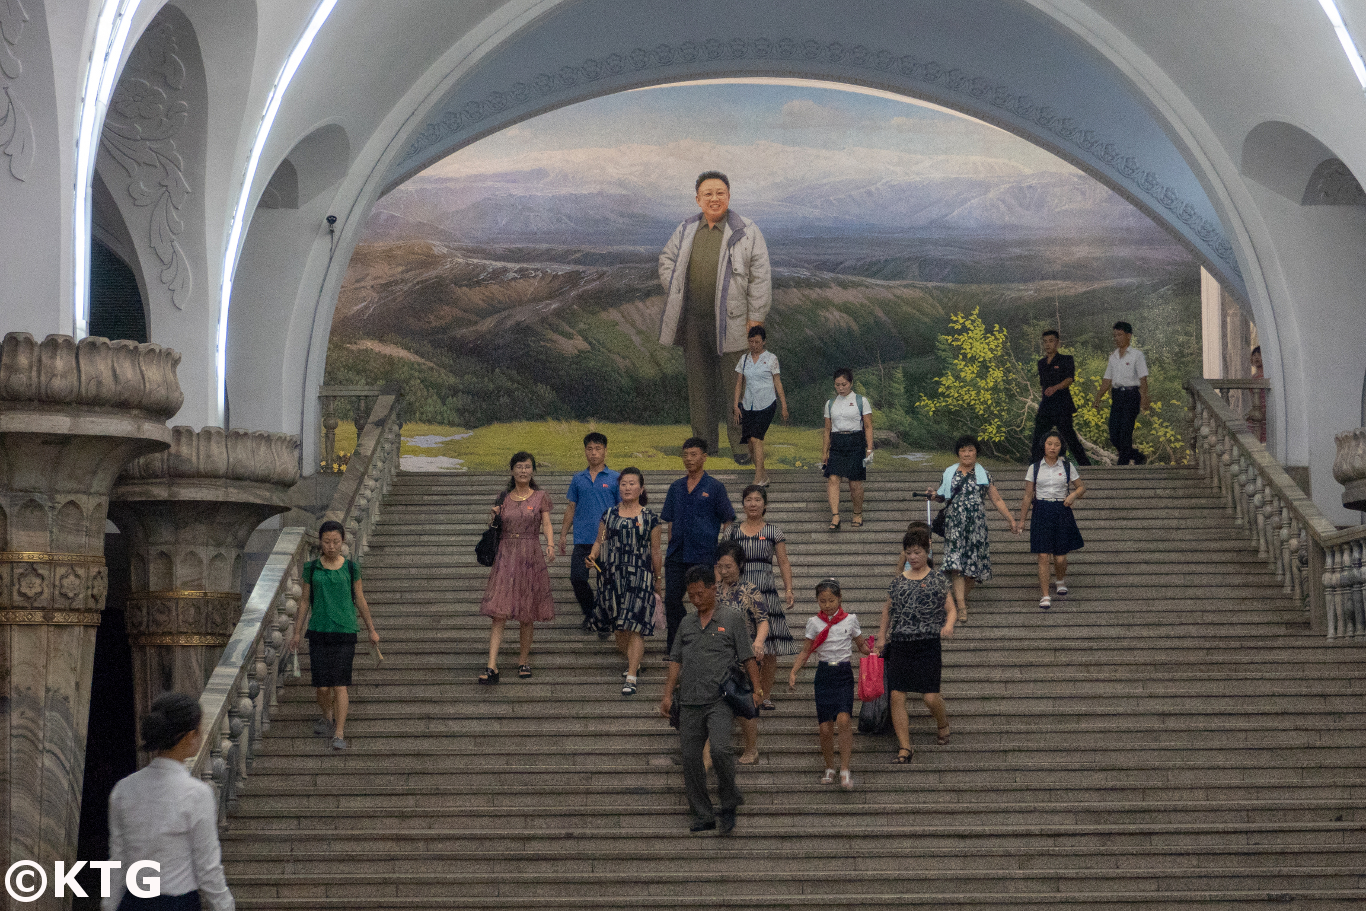 North Korea subway - the Pyongyang Metro